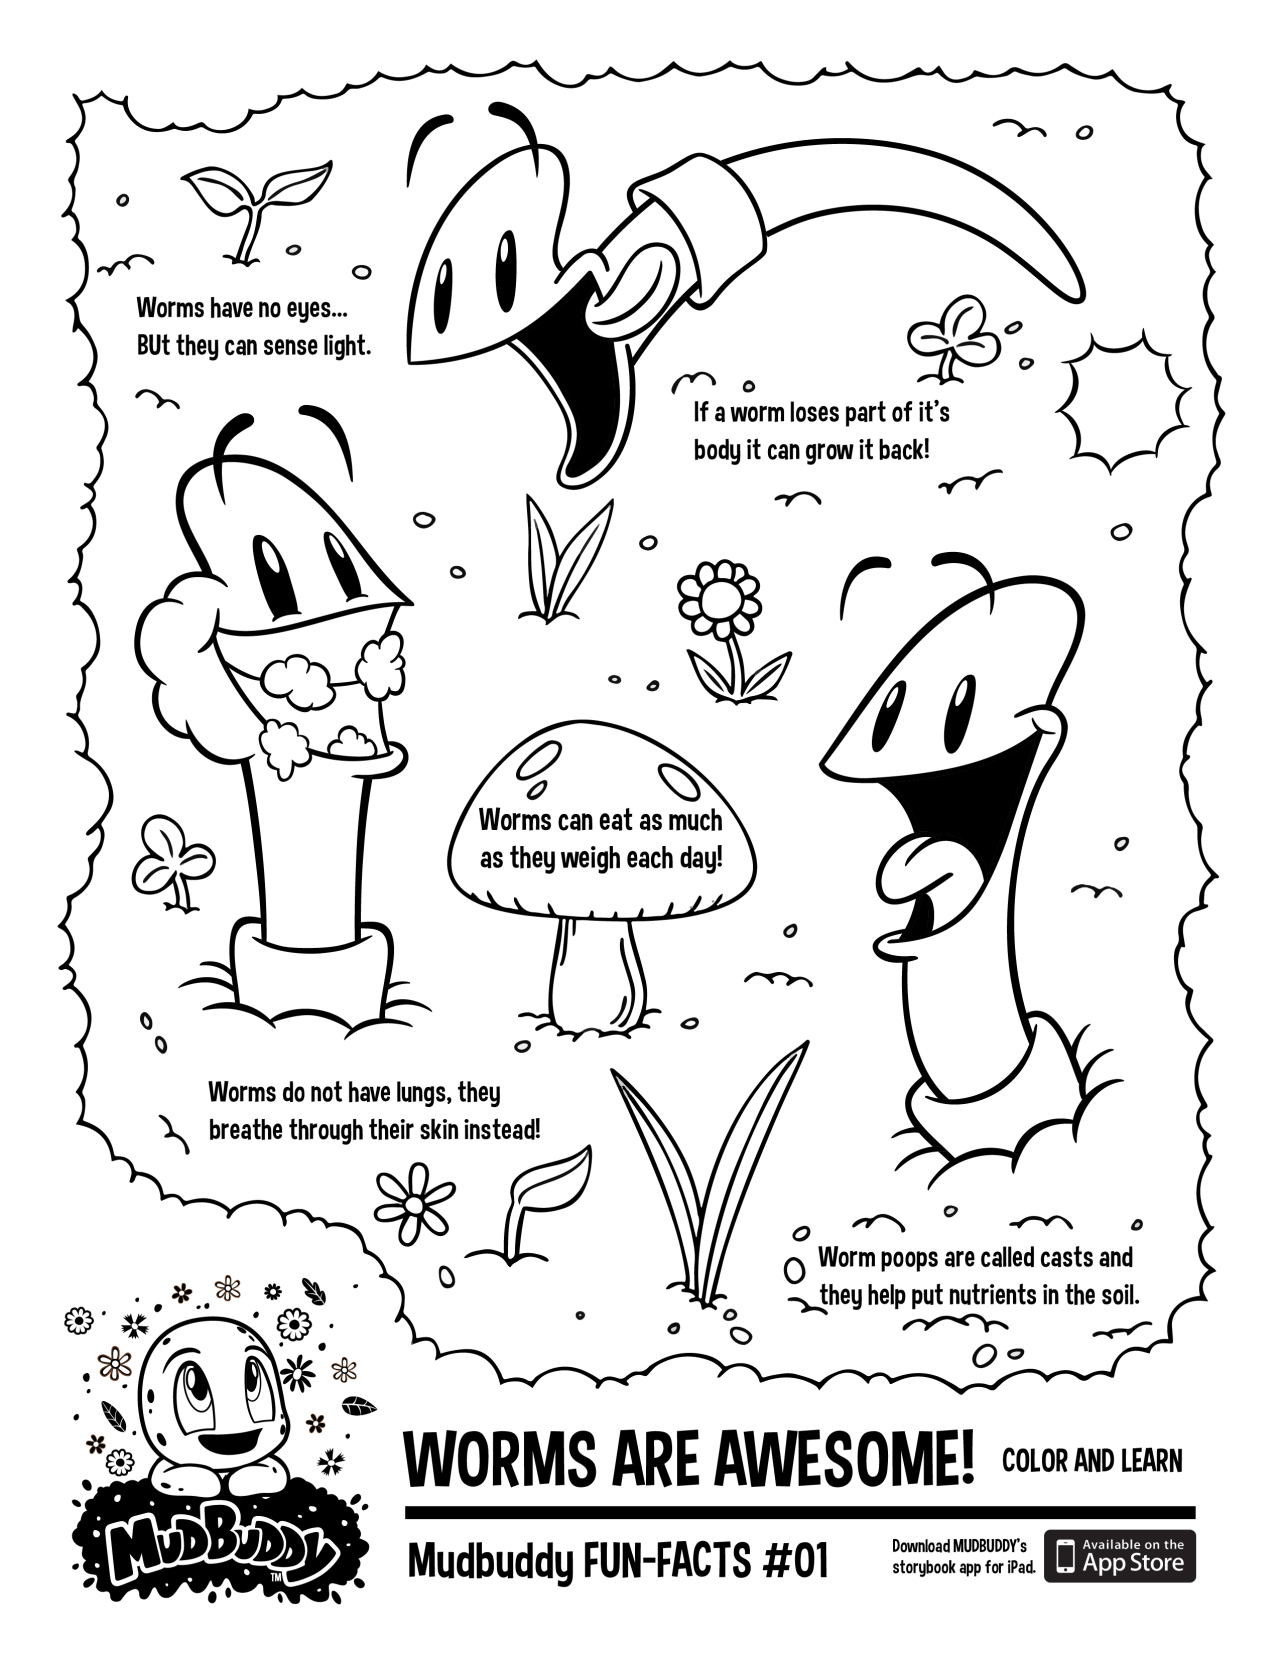 Mudbuddy FUN FACTS! Print out this page and have fun